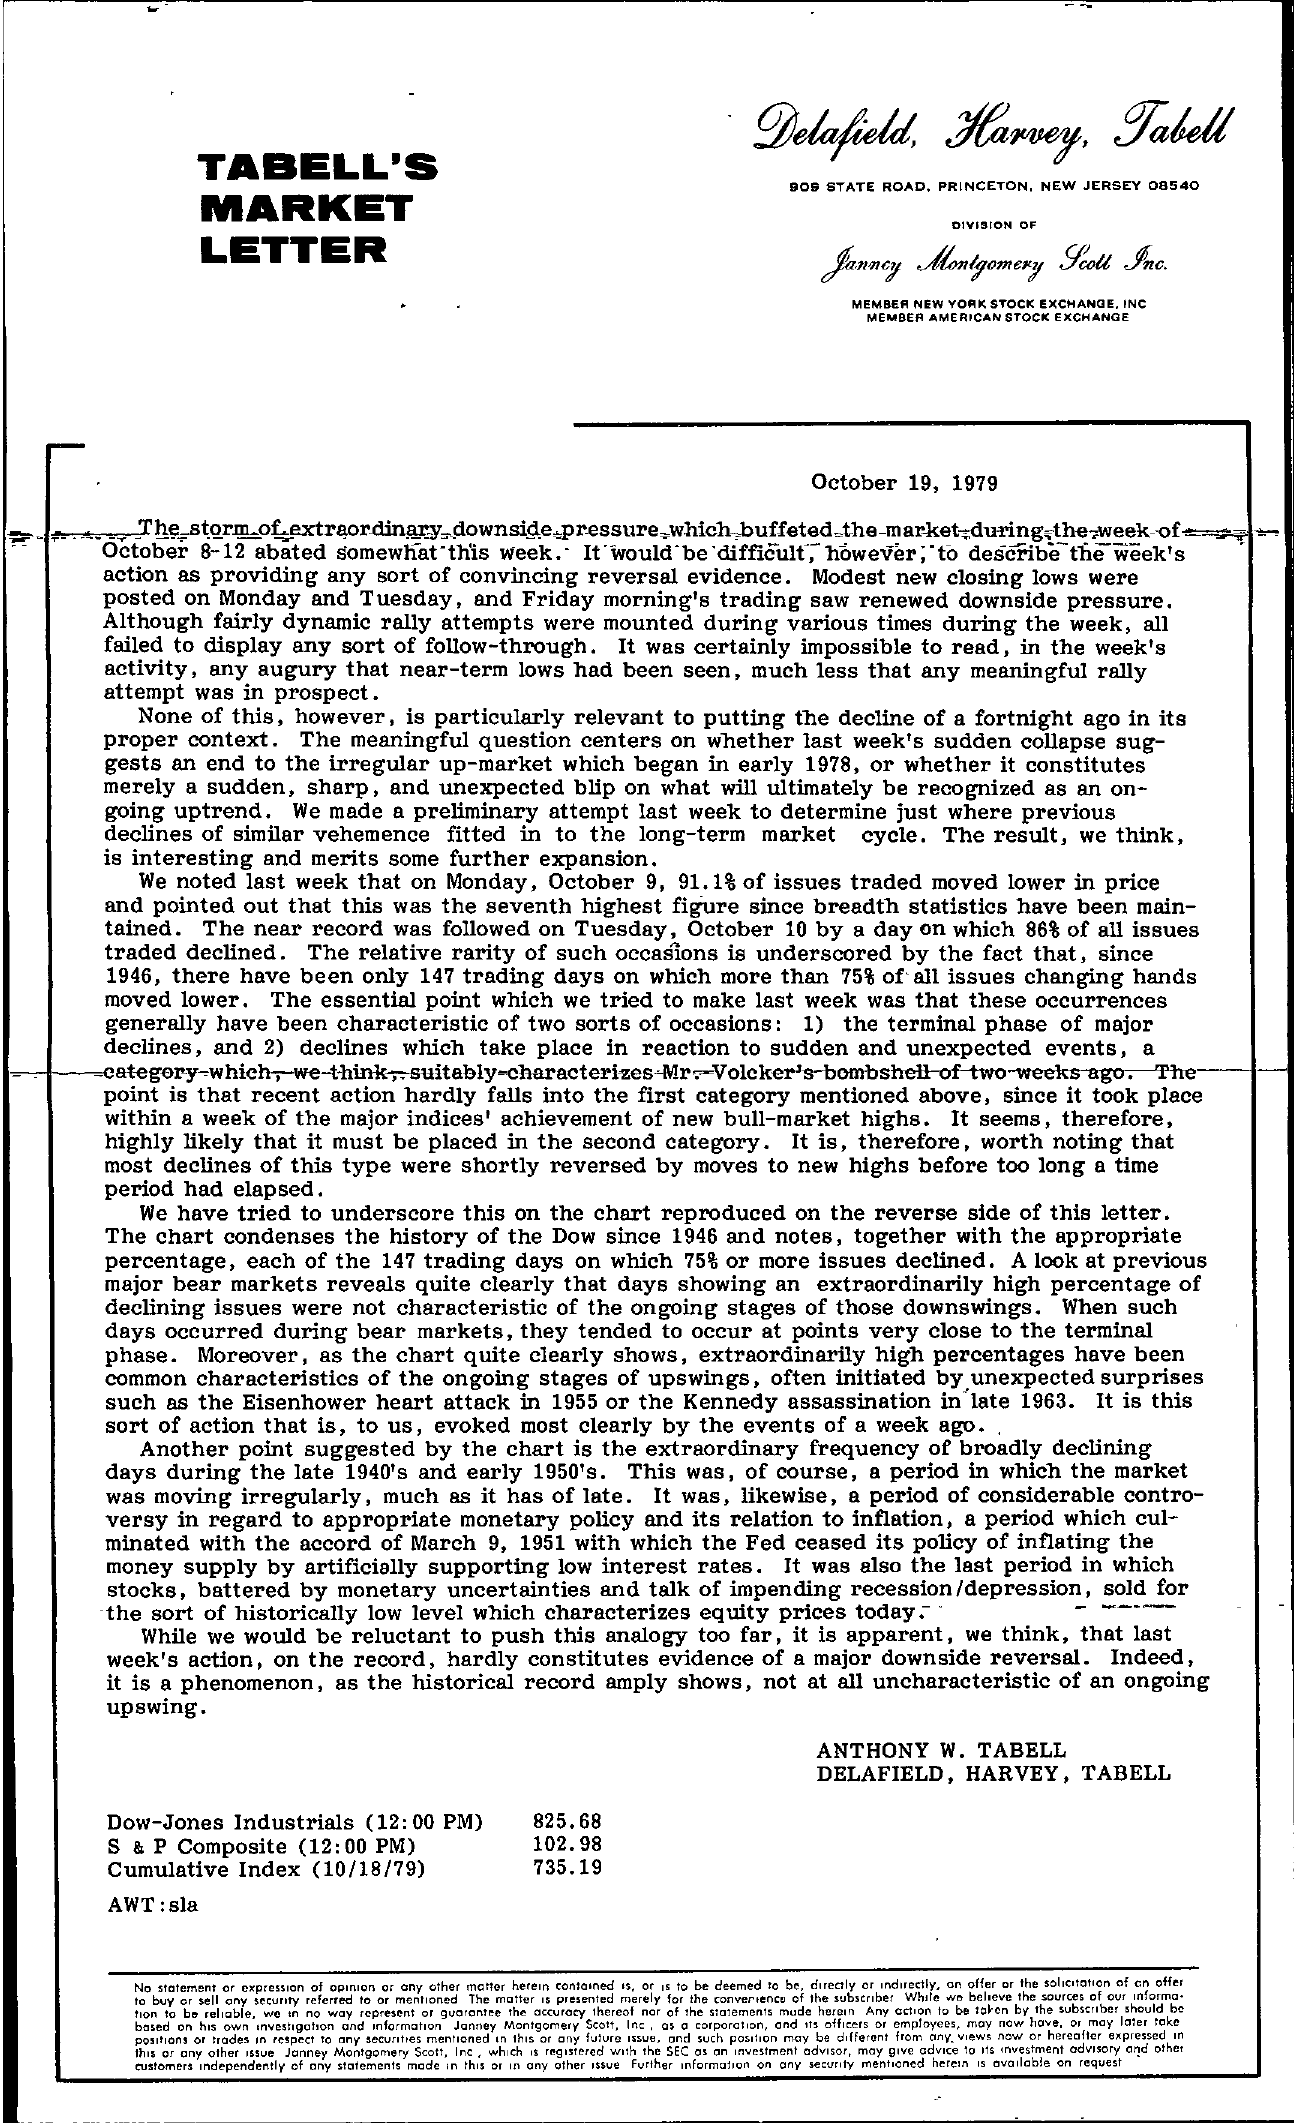 Tabell's Market Letter - October 19, 1979 page 1